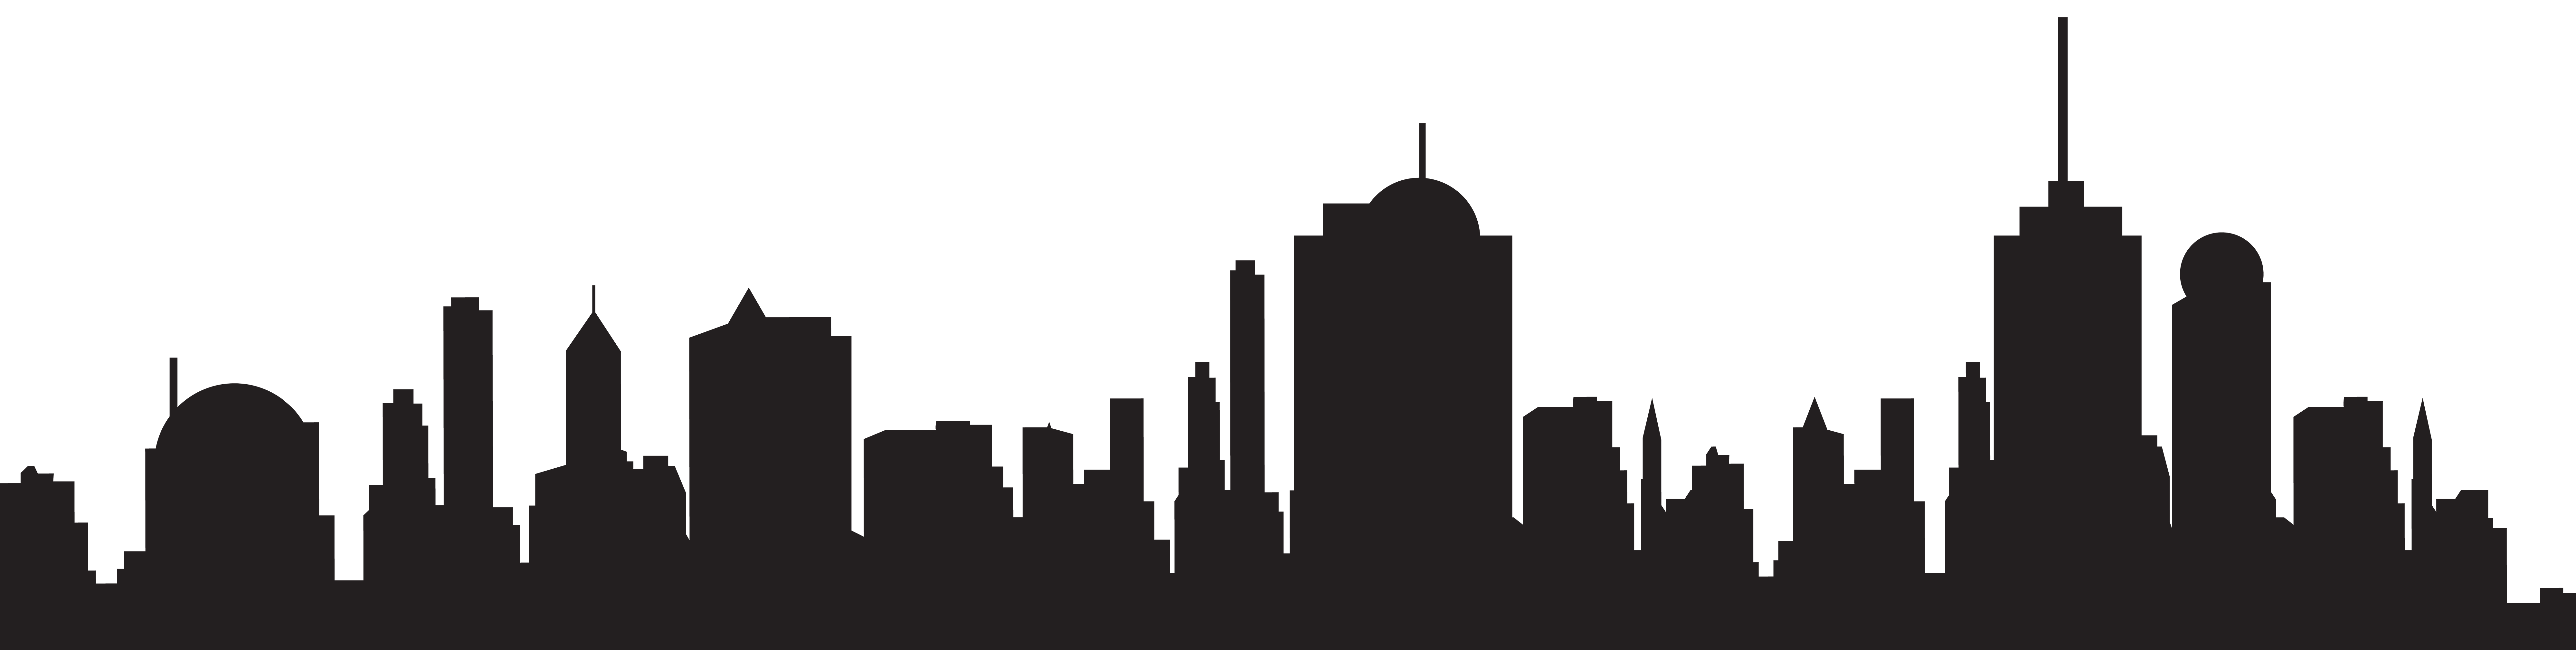 image free download City skyline clipart black and white. New york silhouette free